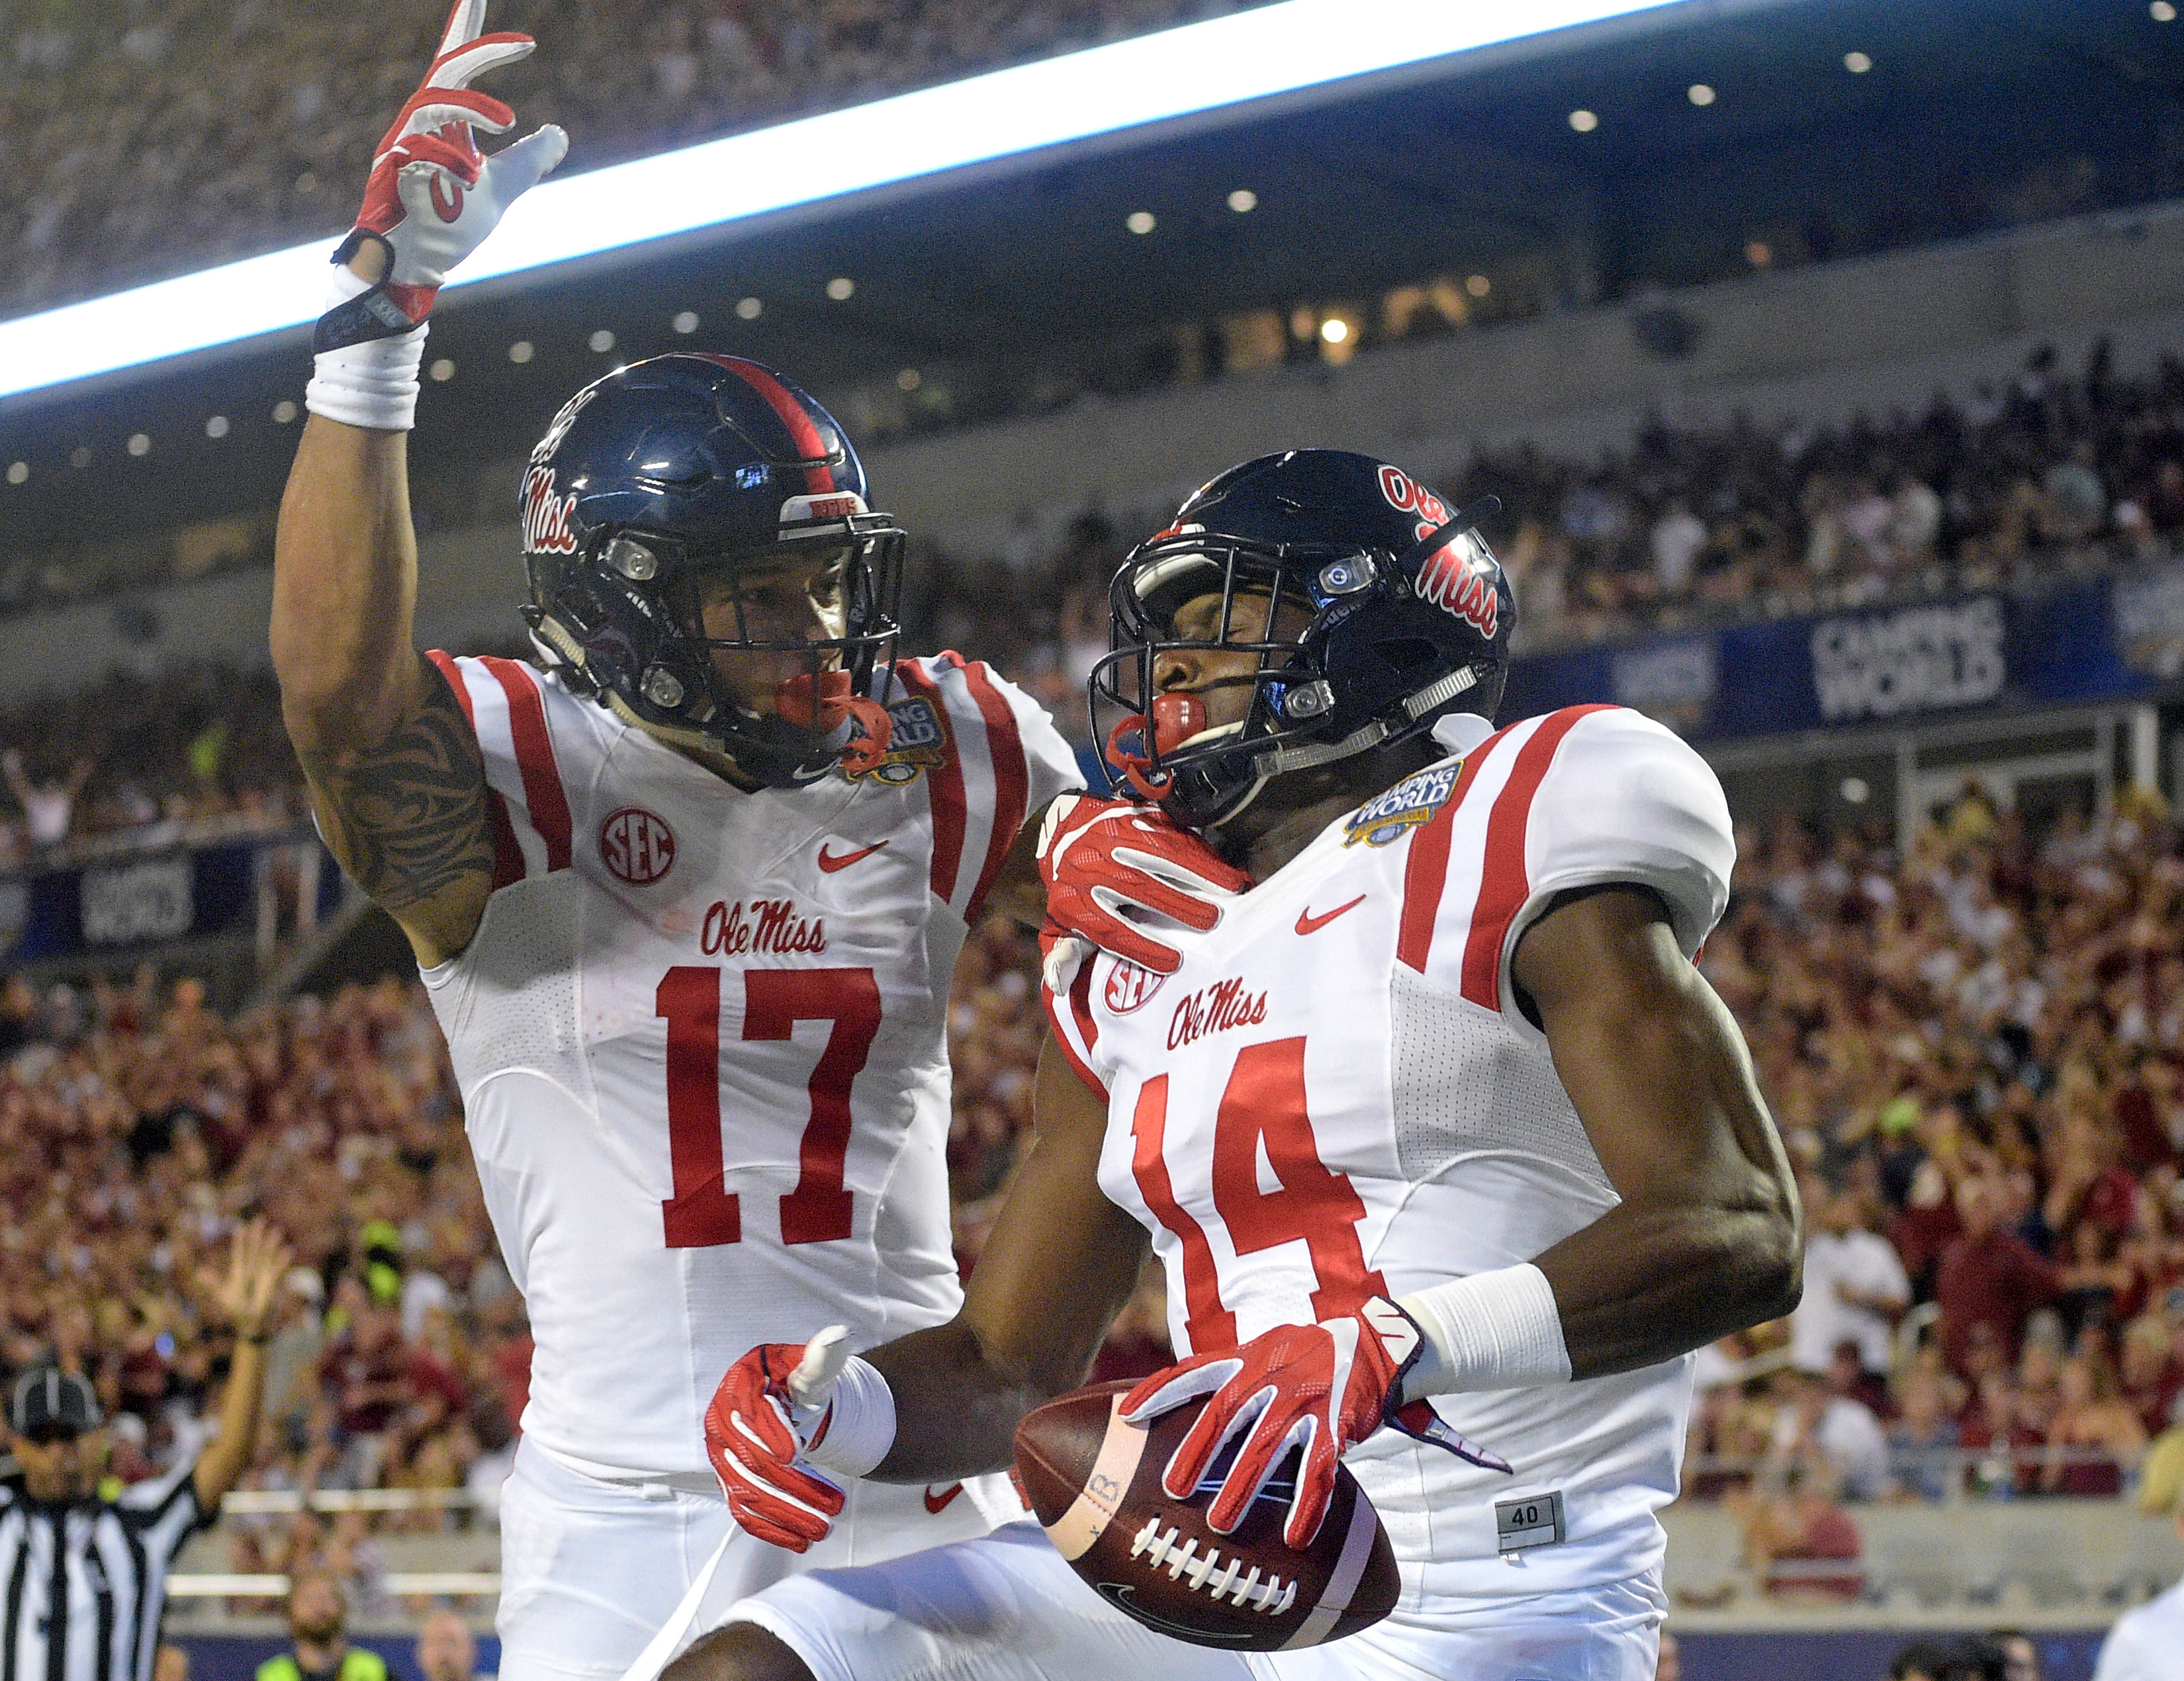 Mississippi wide receiver D.K. Metcalf (14) celebrates his 3-yard touchdown reception against Florida State with tight end Evan Engram (17) during the first half of an NCAA college football game, Monday, Sept. 5, 2016, in Orlando, Fla. (AP Photo/Phelan M.